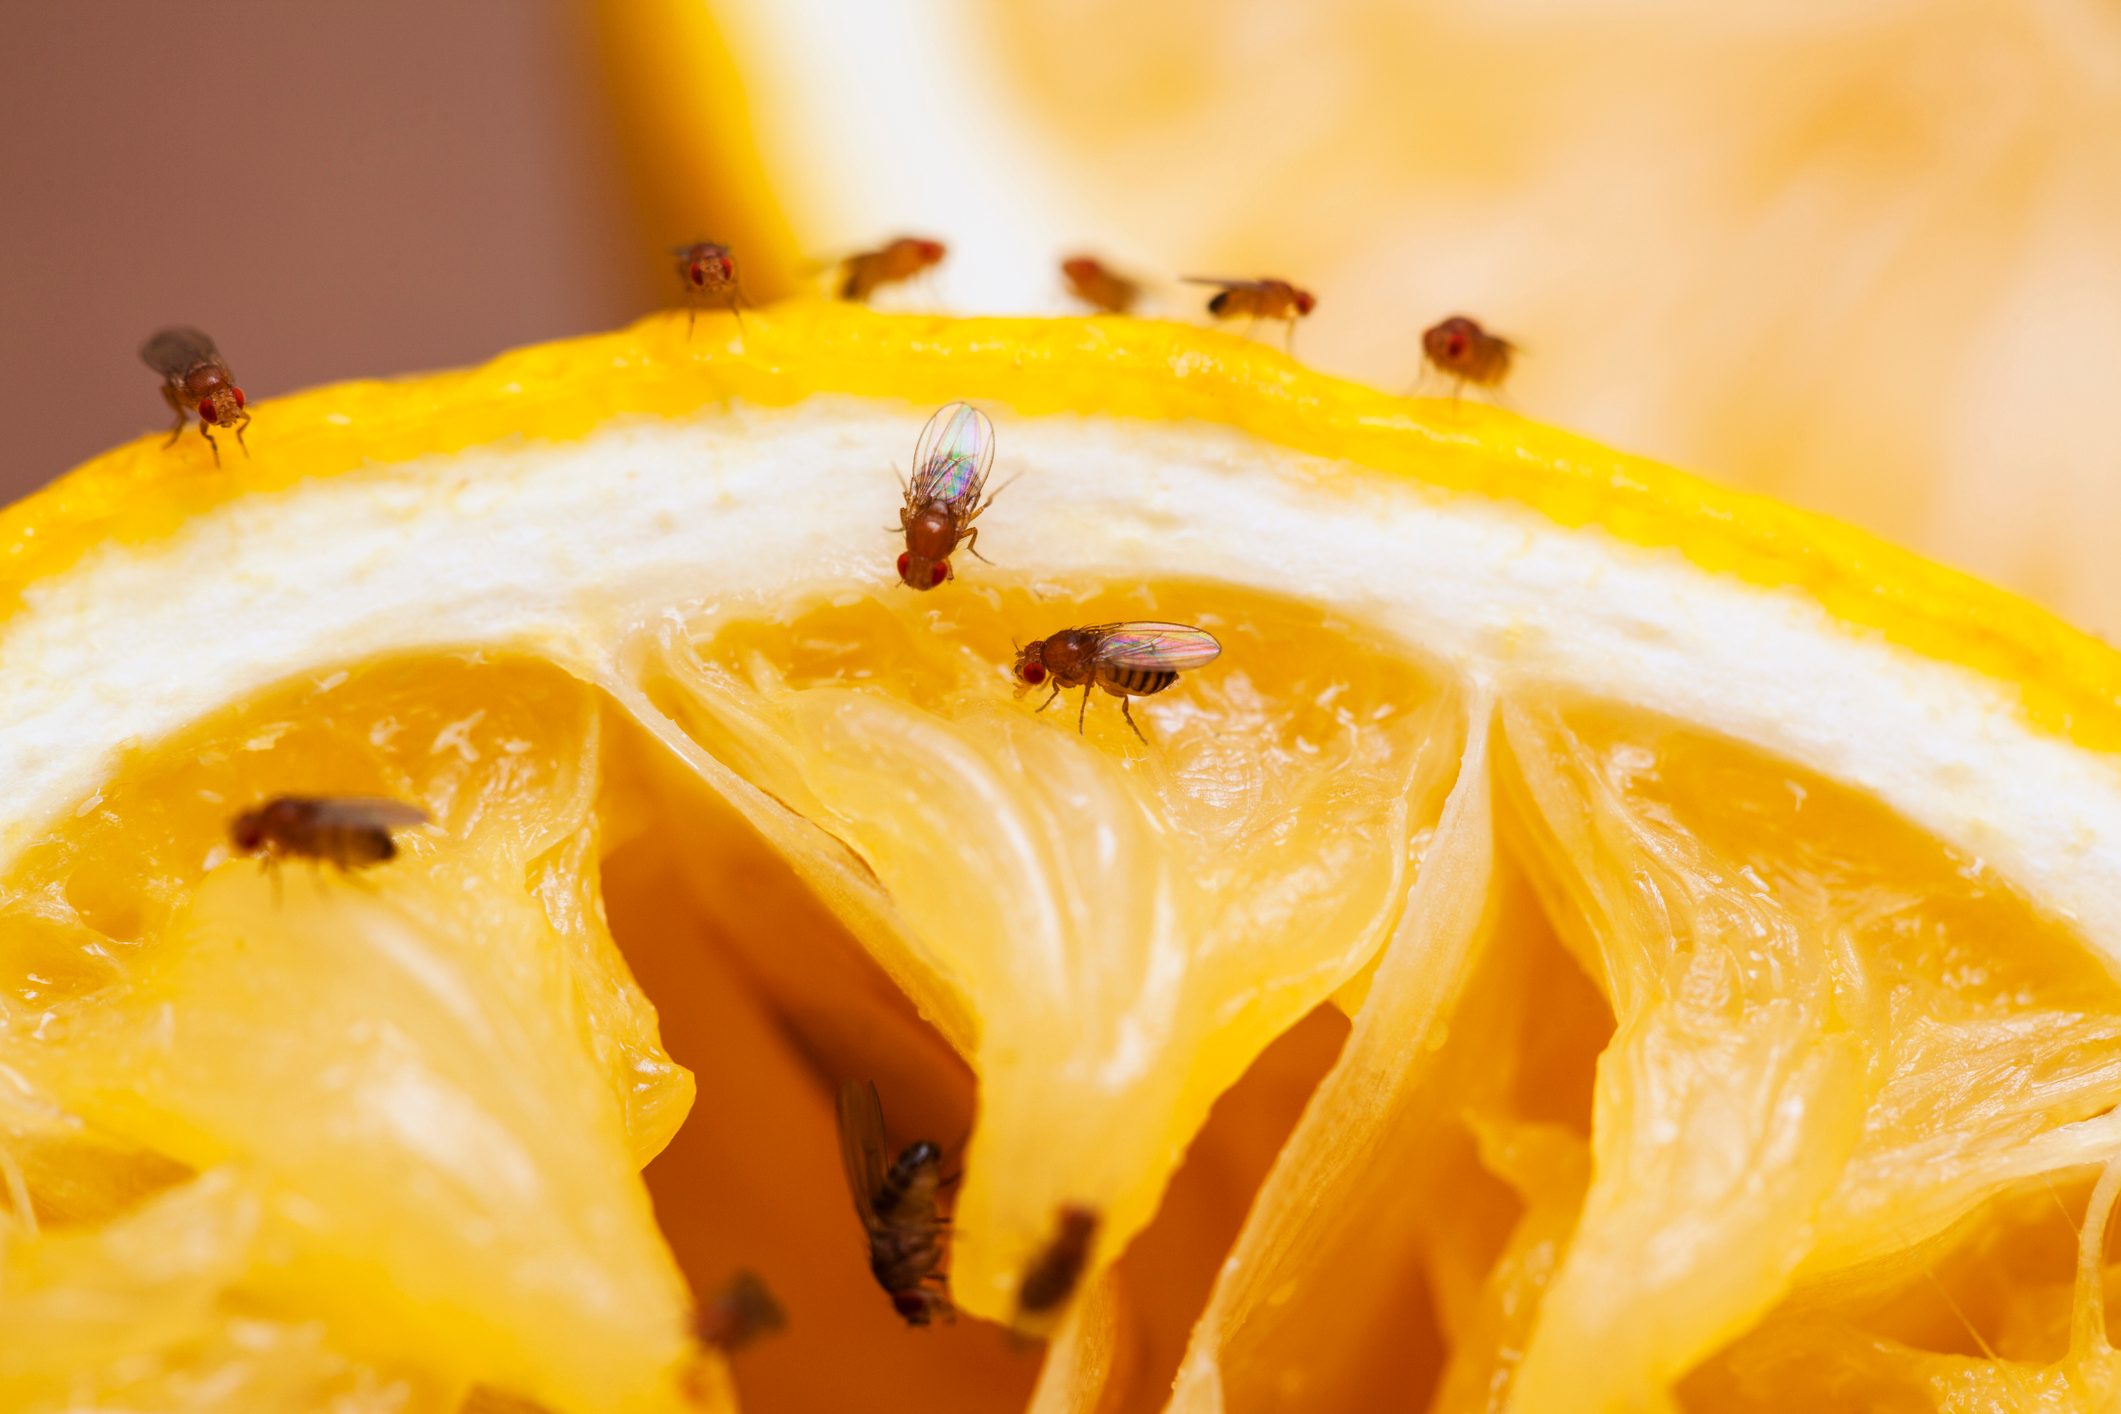 7 Best Ways Get Rid of Fruit Flies in Your House, According to Bug Experts